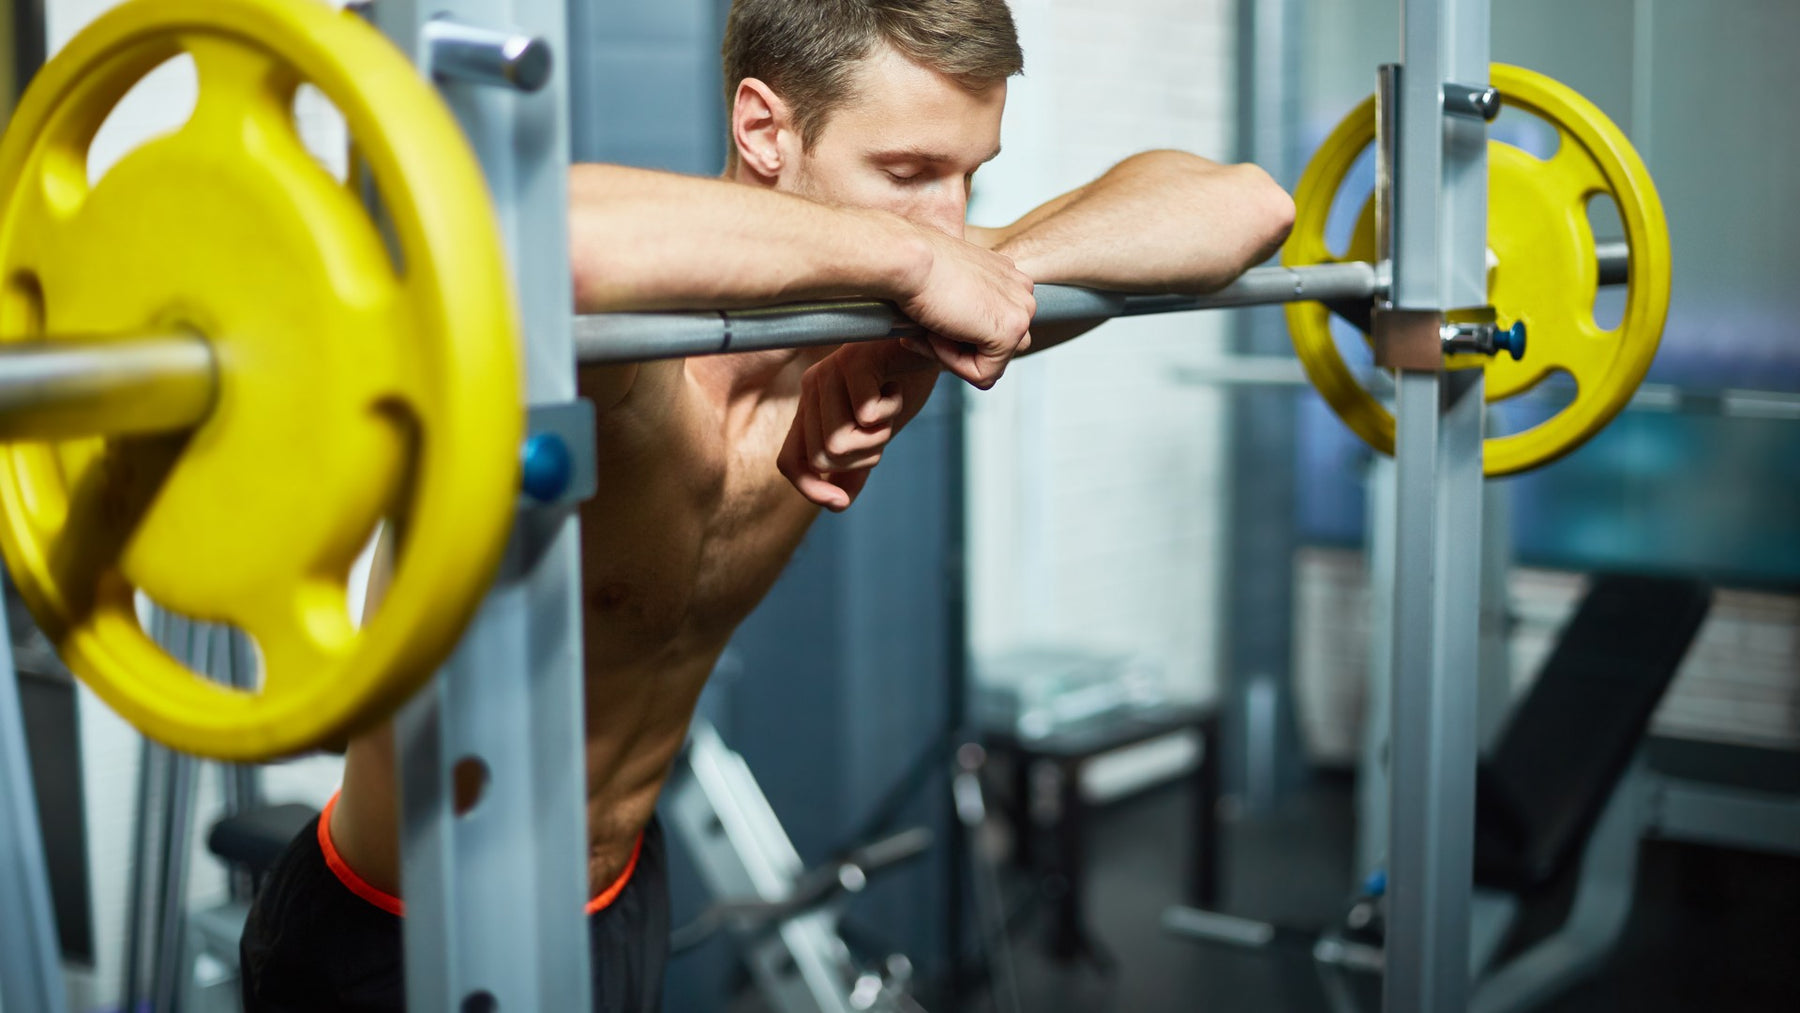 10 Ways to Prevent Overtraining